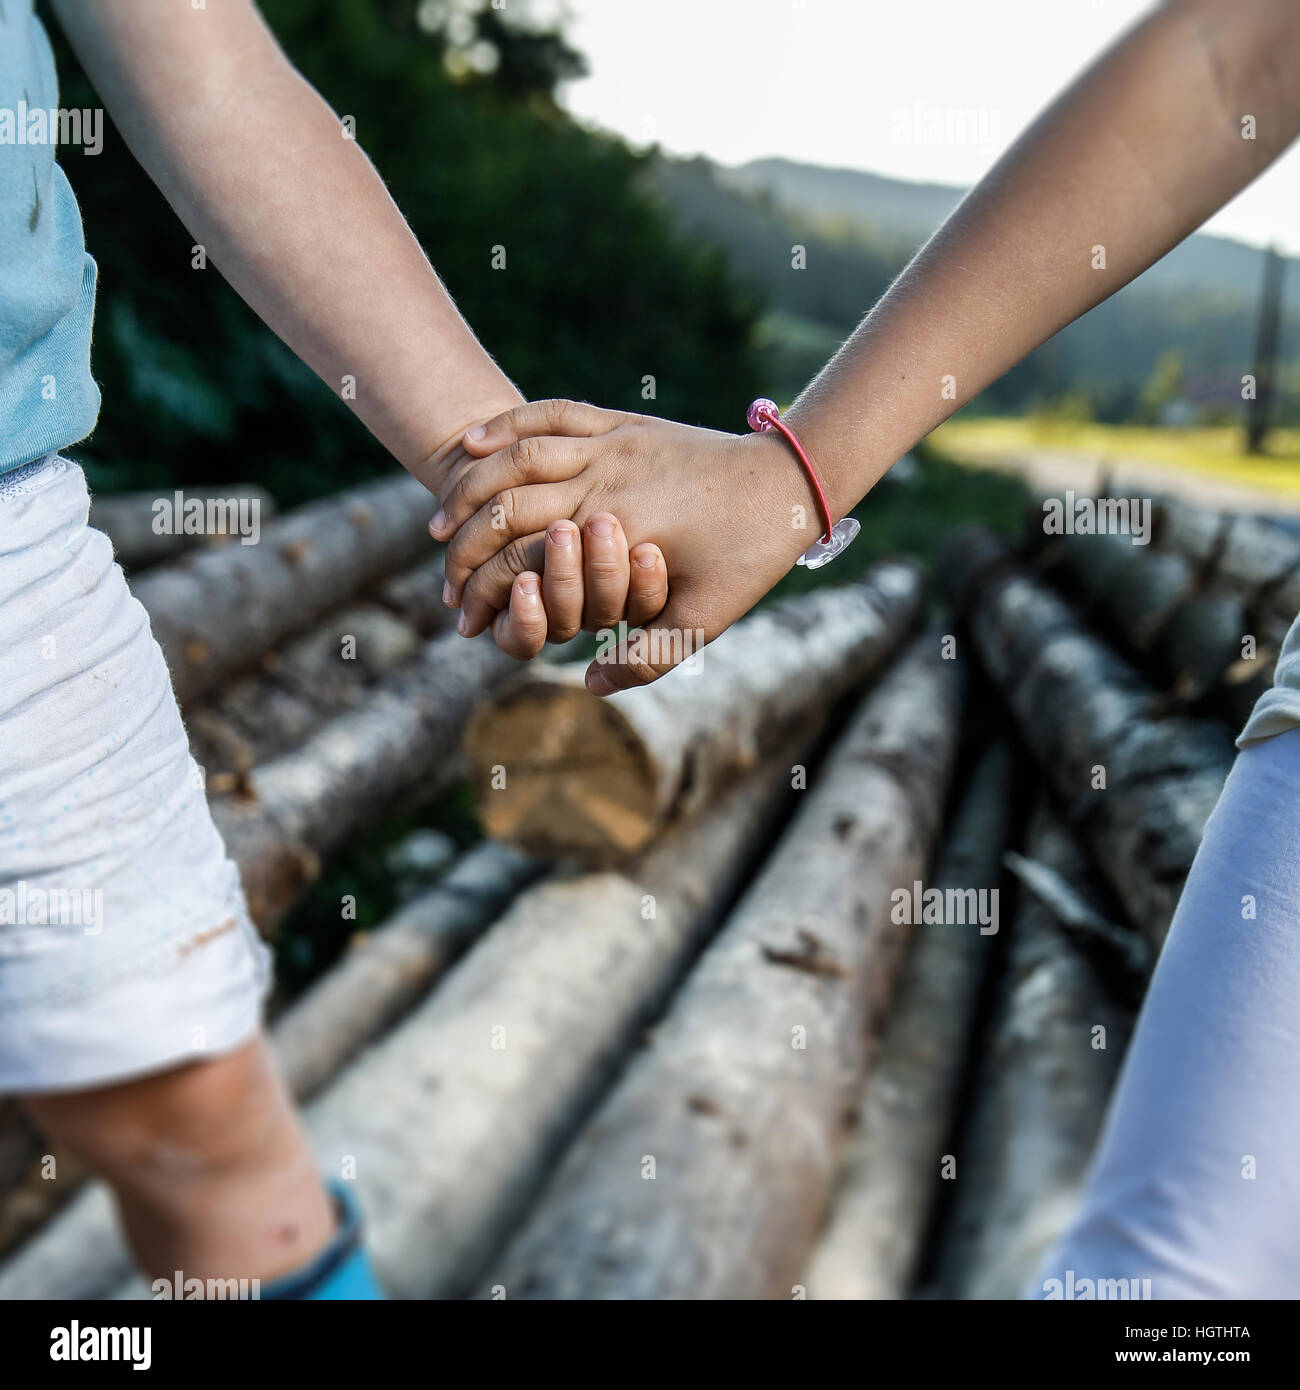 Friends holding hands, enjoying time together. Happy, carefree, outdoor countryside childhood, siblings love, companionship, - Stock Image